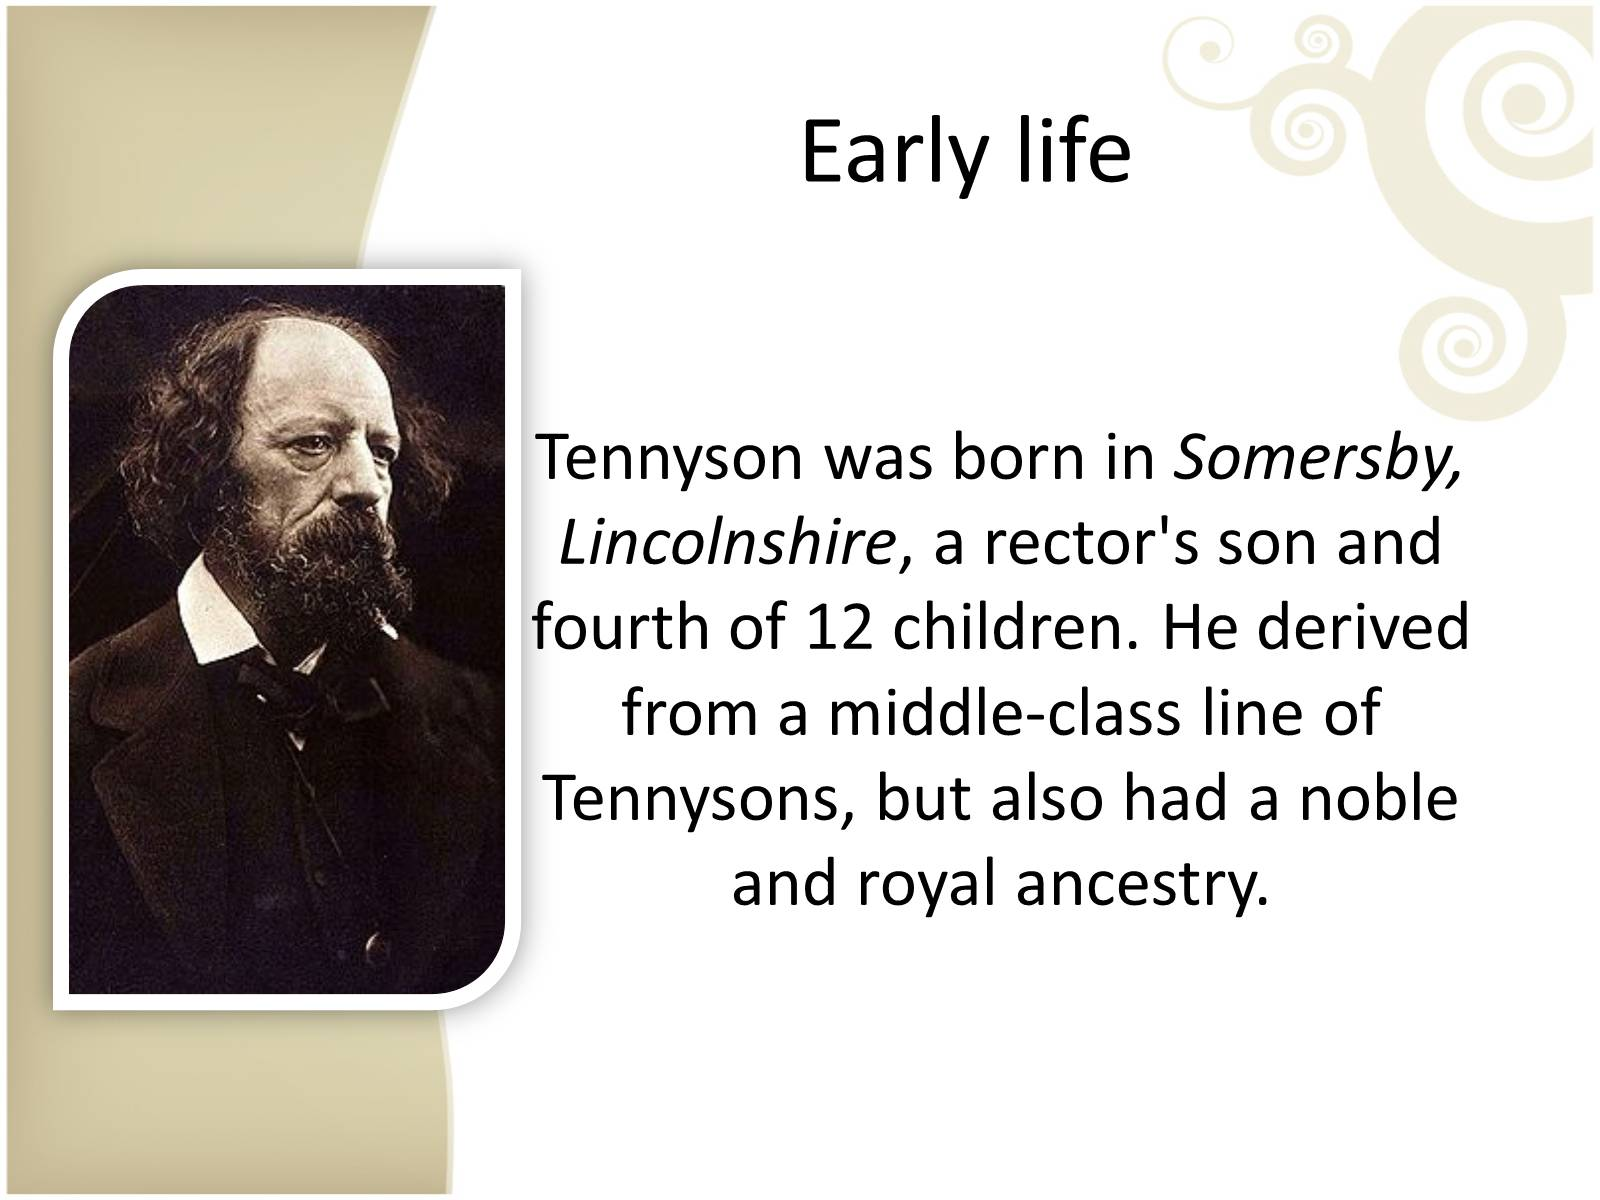 tennyson close analysis A close reading of alfred tennyson's ulysses by matt wallace in the second stanza (lines 33-43) of his poem, alfred tennyson has ulysses, in an aside, describe his son, telemachus, in rather mundane and bland terms.